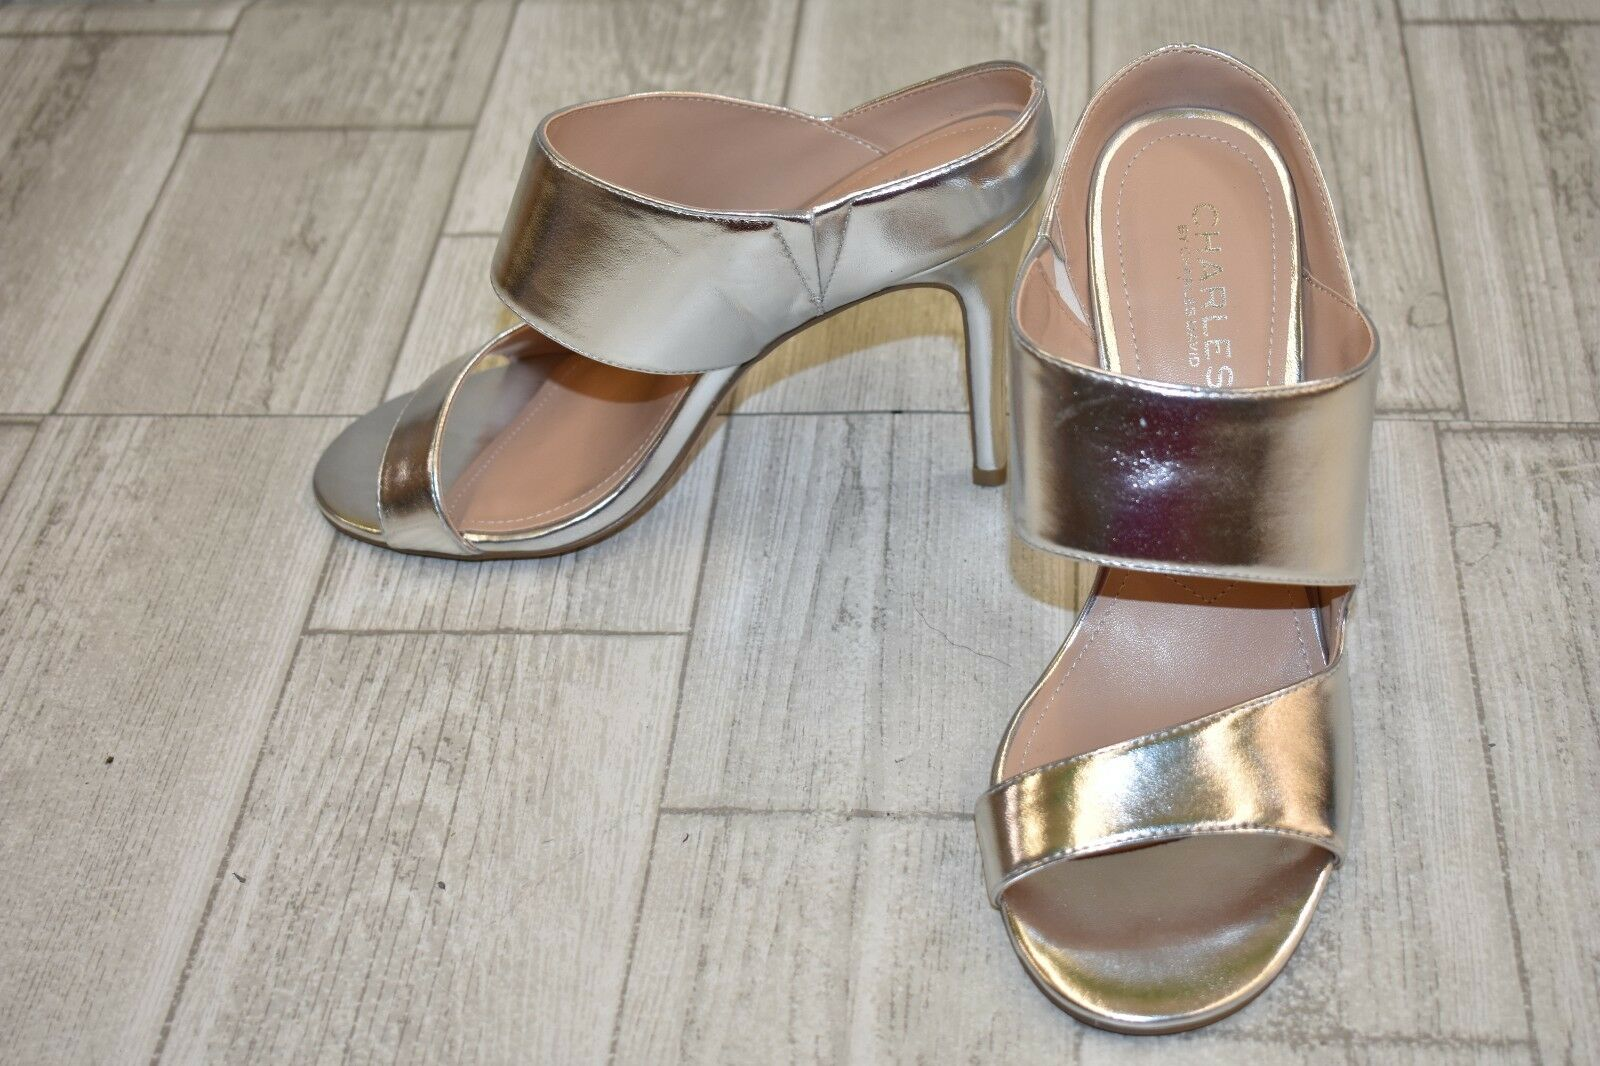 Charles By Charles David Romi Metallic Sandals, Women's Size 7.5M, Silver